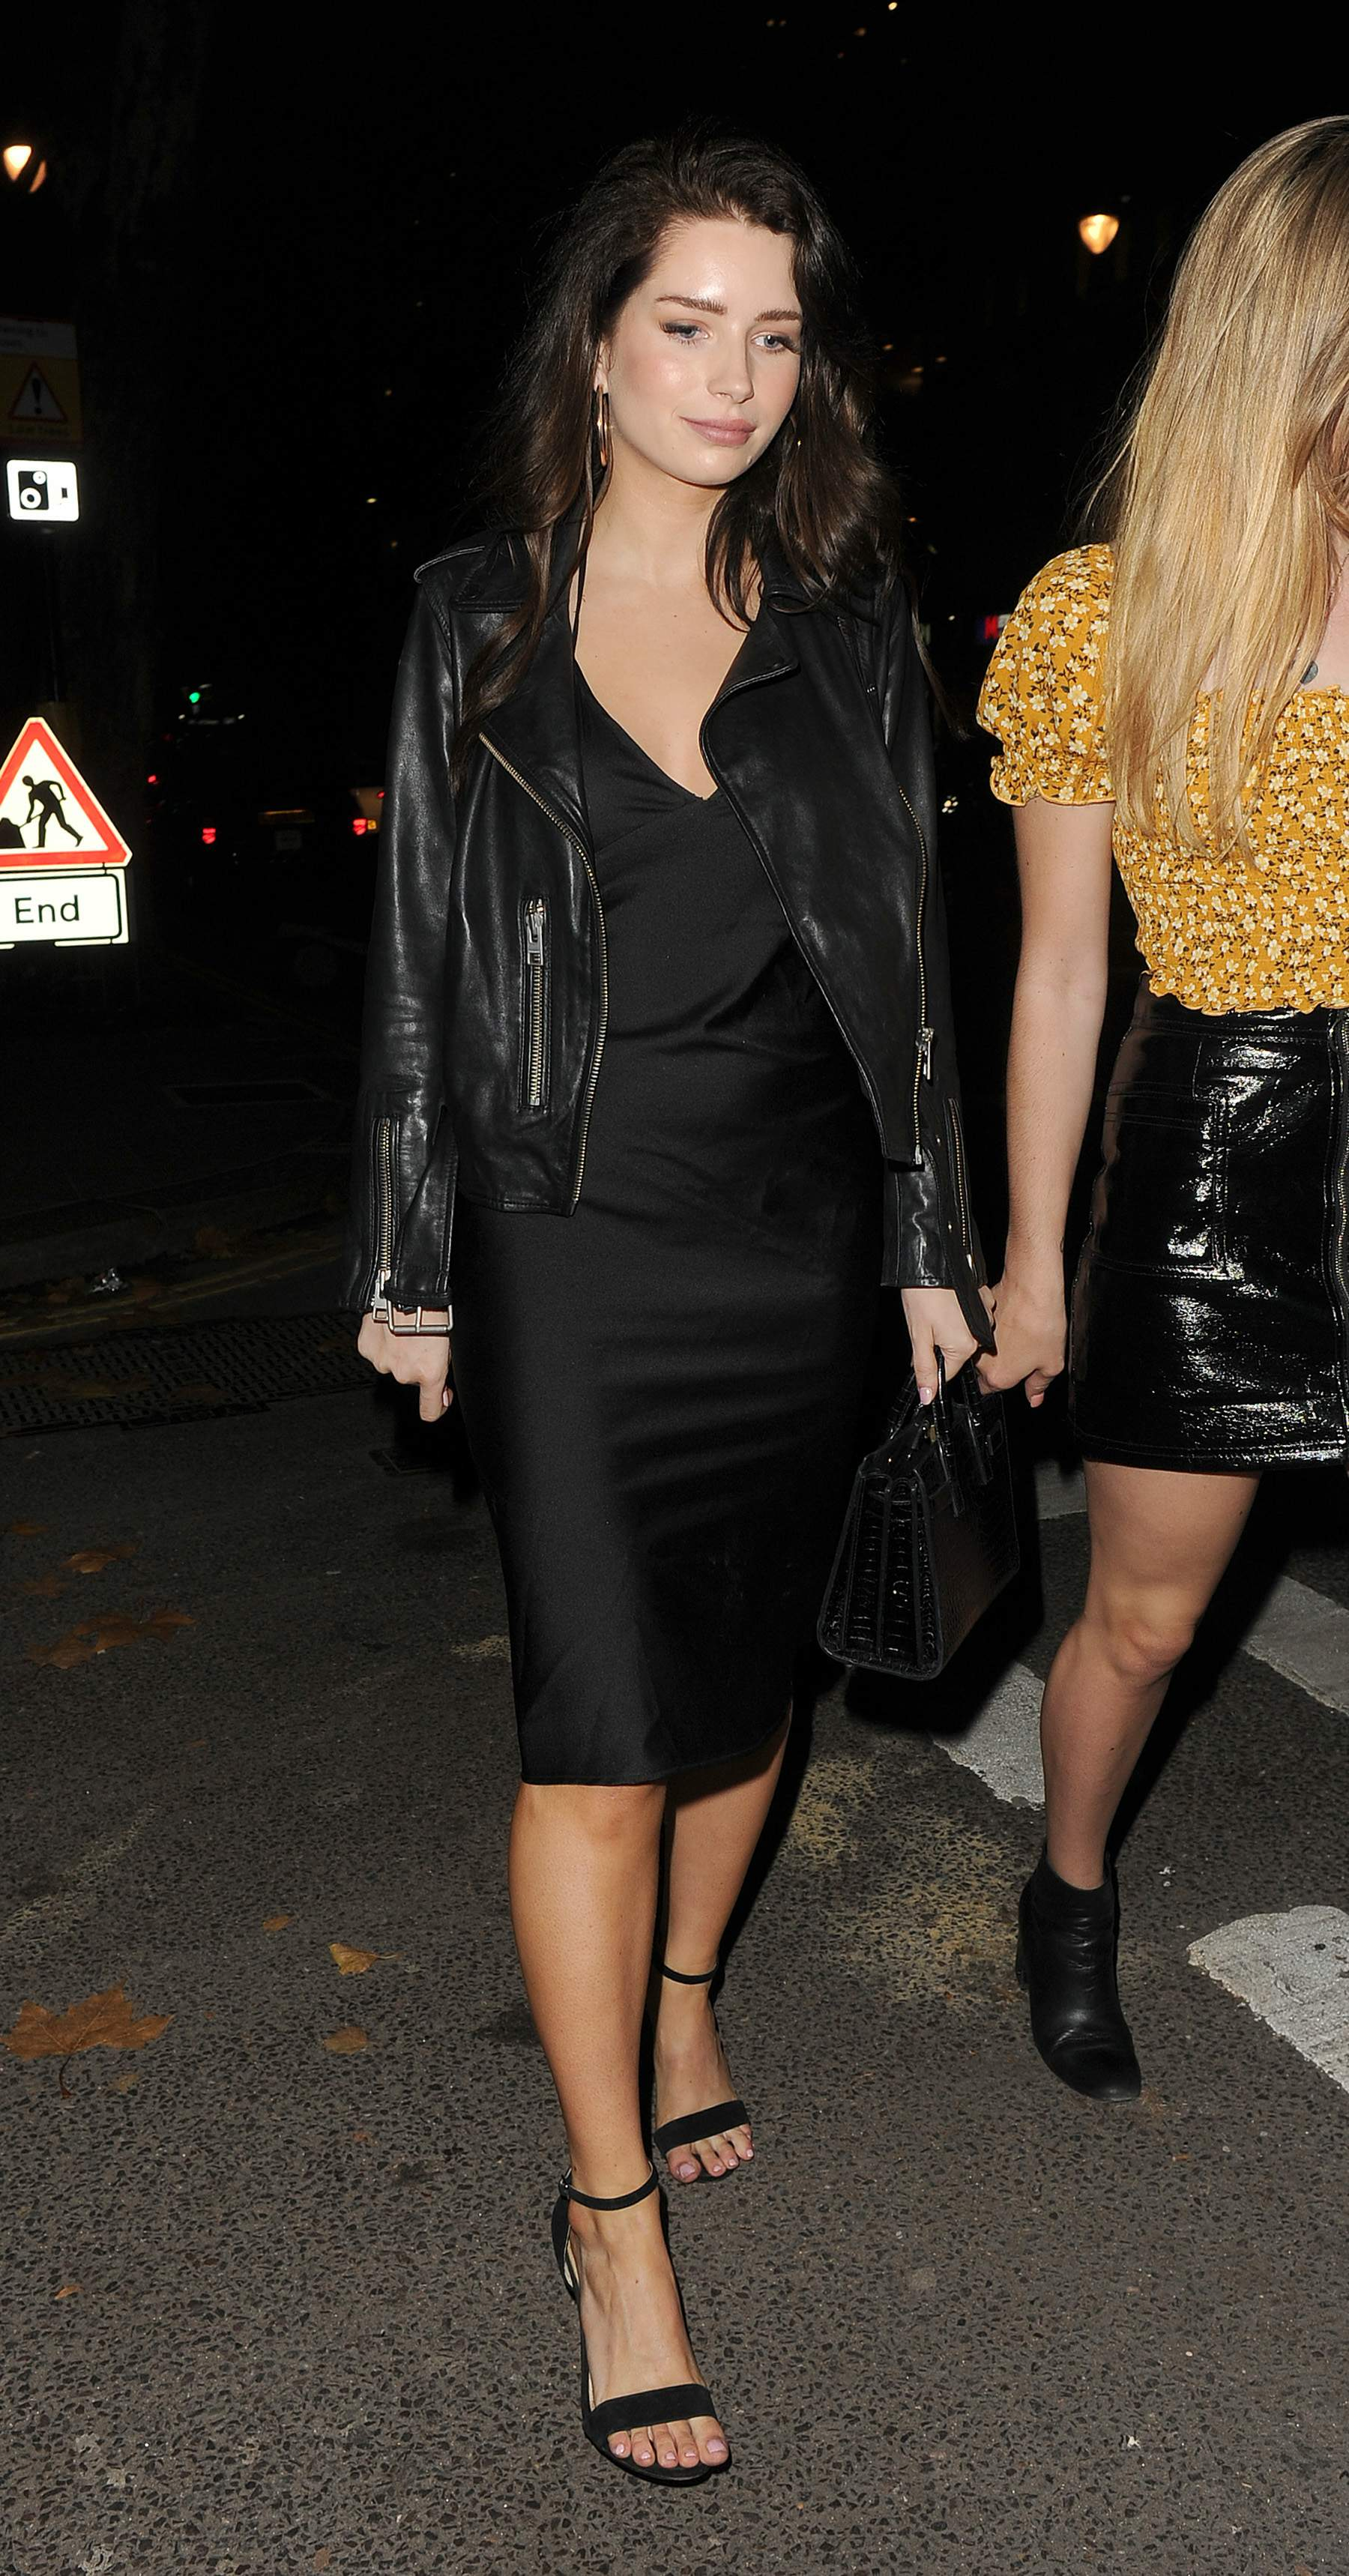 Lottie Moss & Ella Ross out and about in London